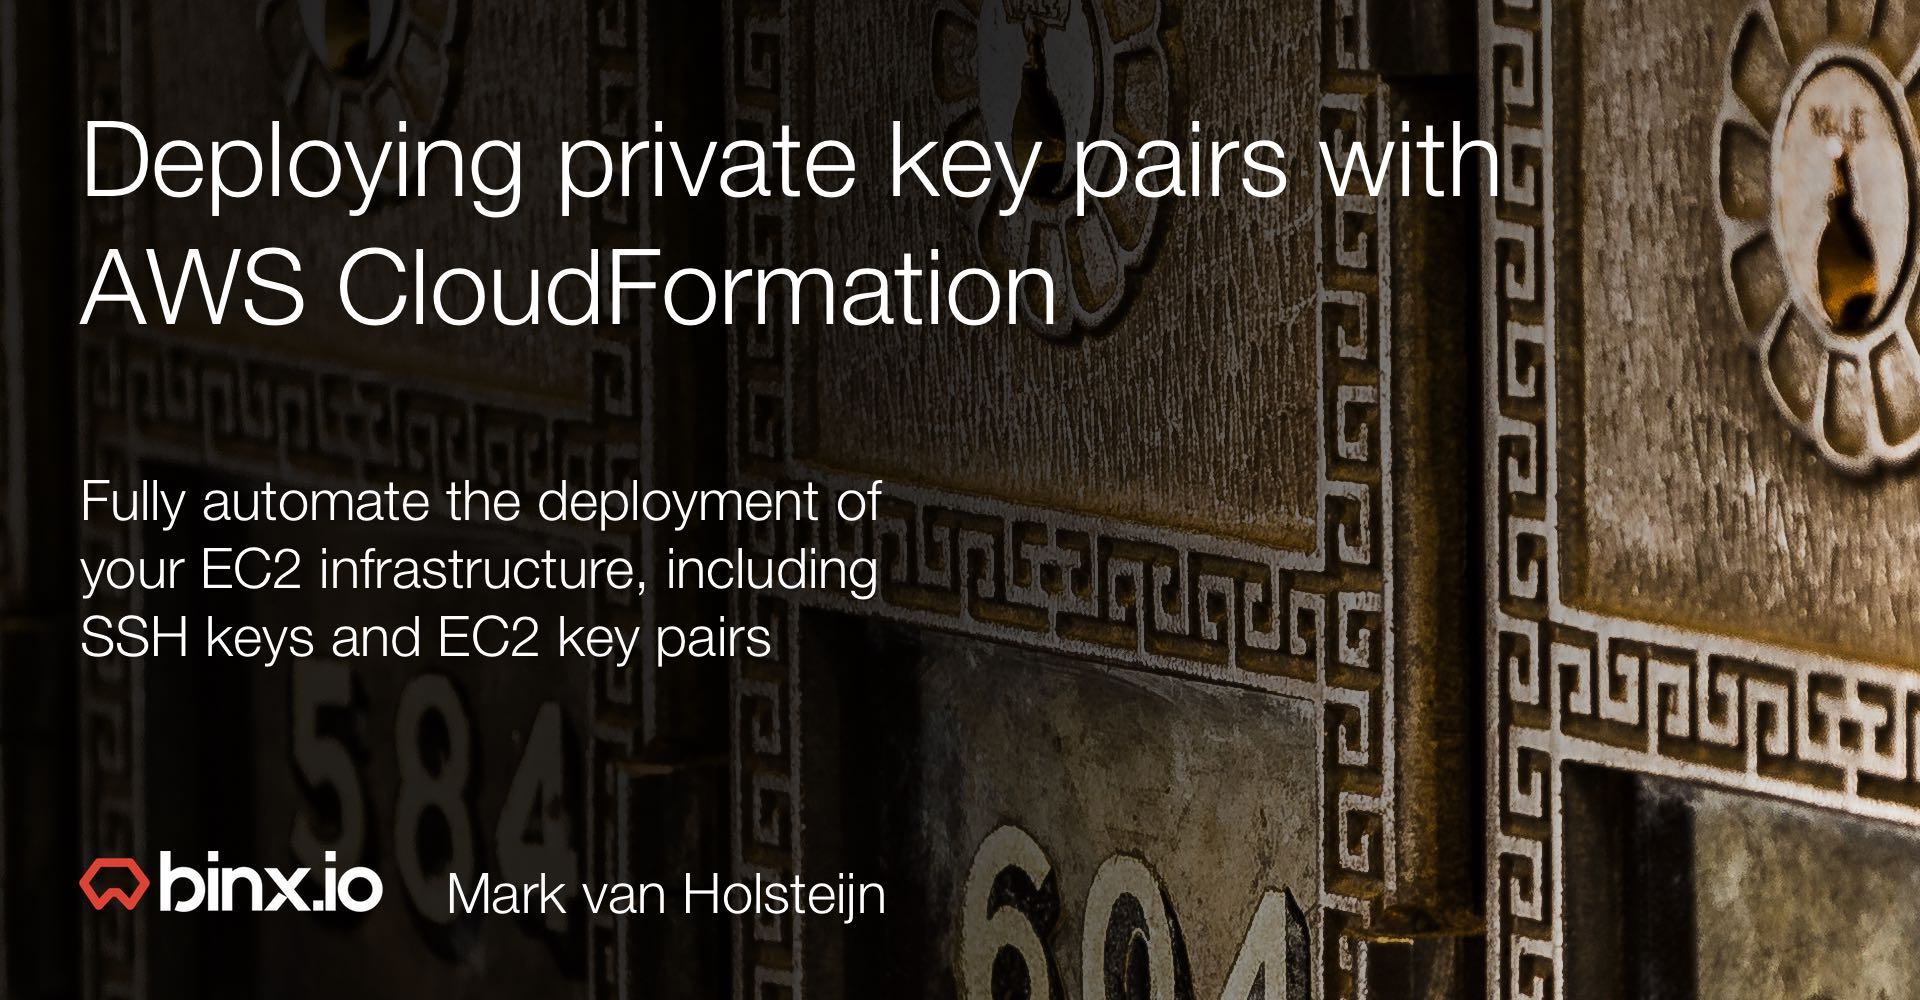 Deploying private key pairs with AWS CloudFormation